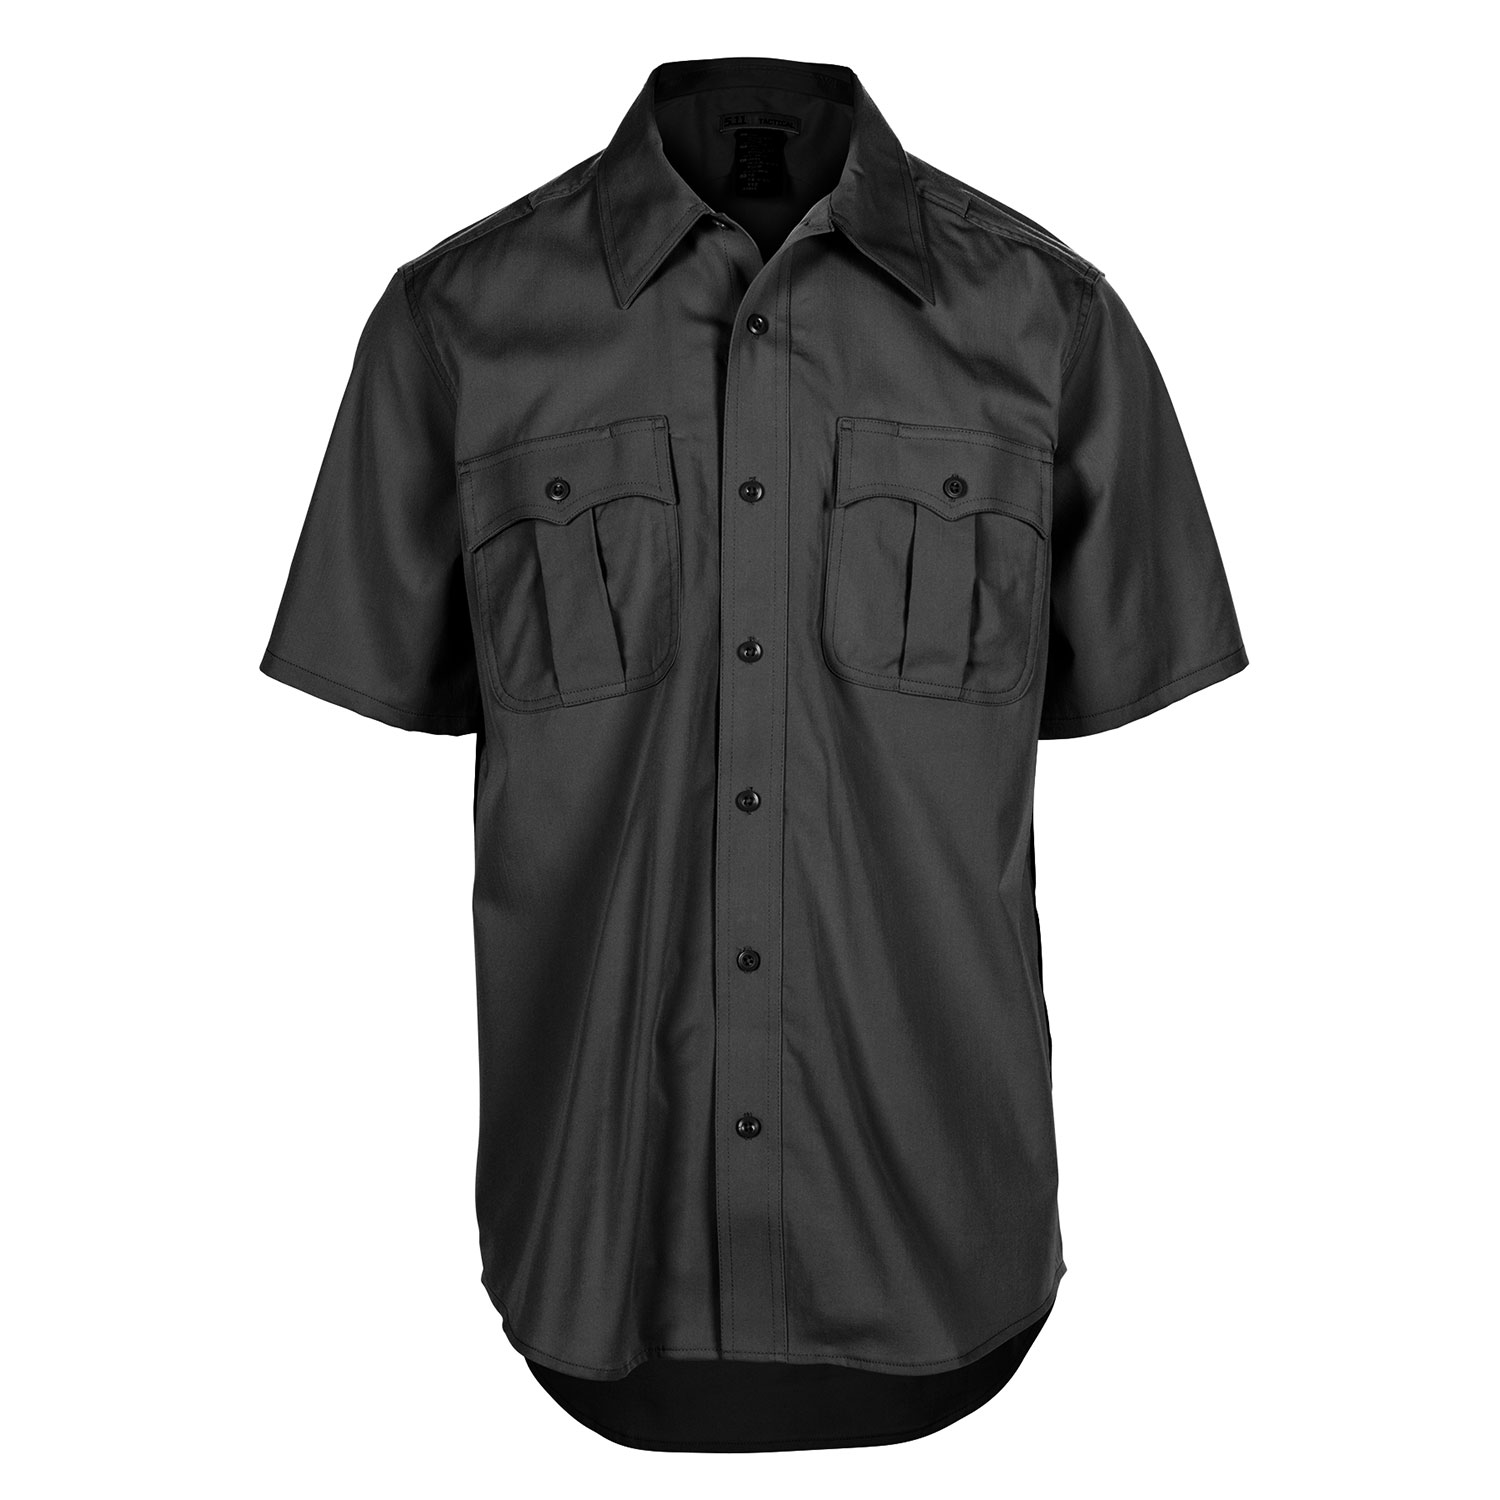 5.11 Class A Flex-Tac Poly/Wool Twill Short Sleeve Shirt